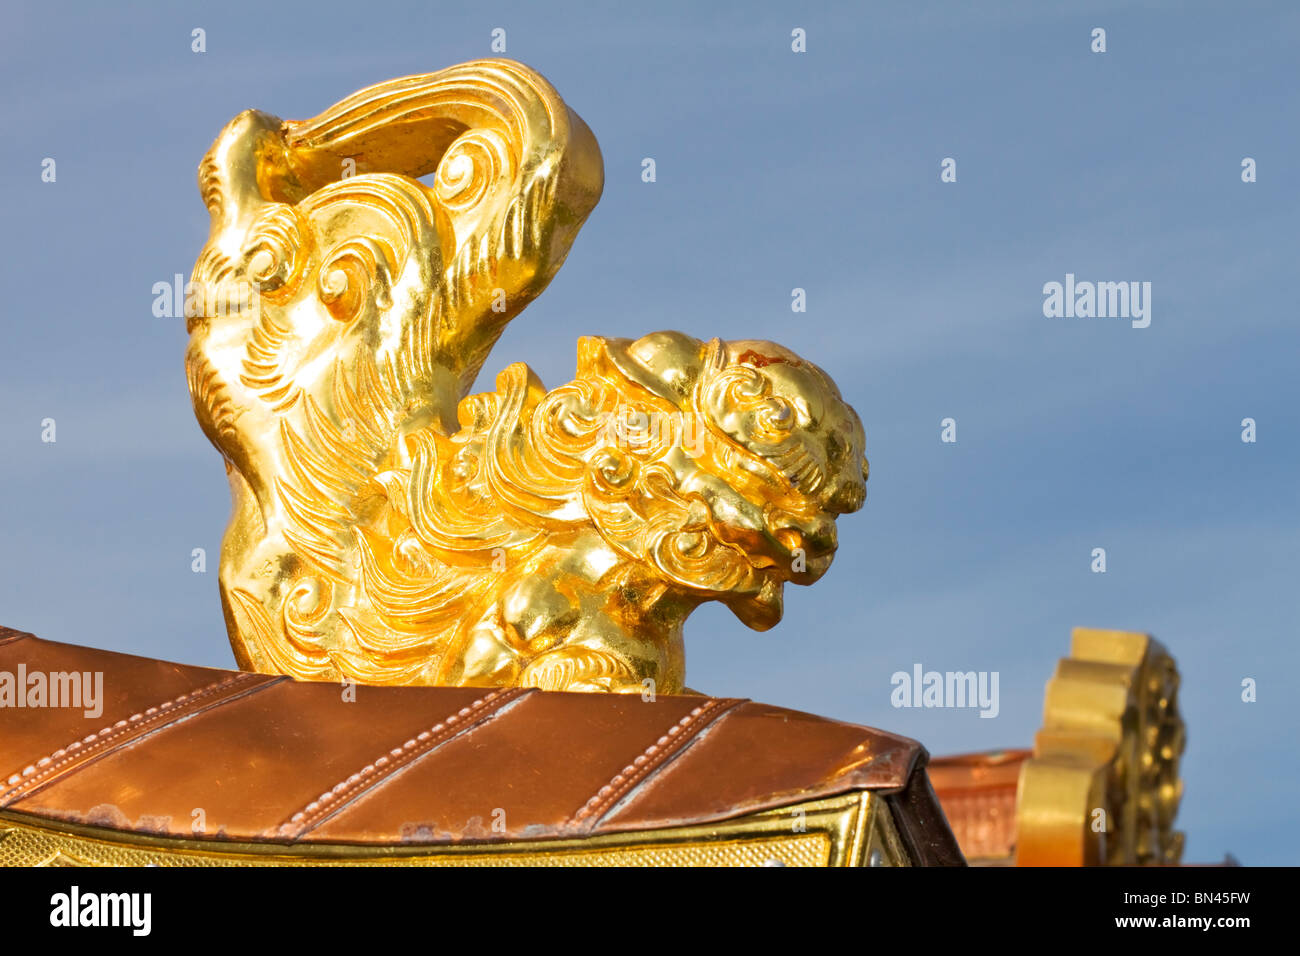 Golden Chinese lion on an Asian funeral hearse - Stock Image